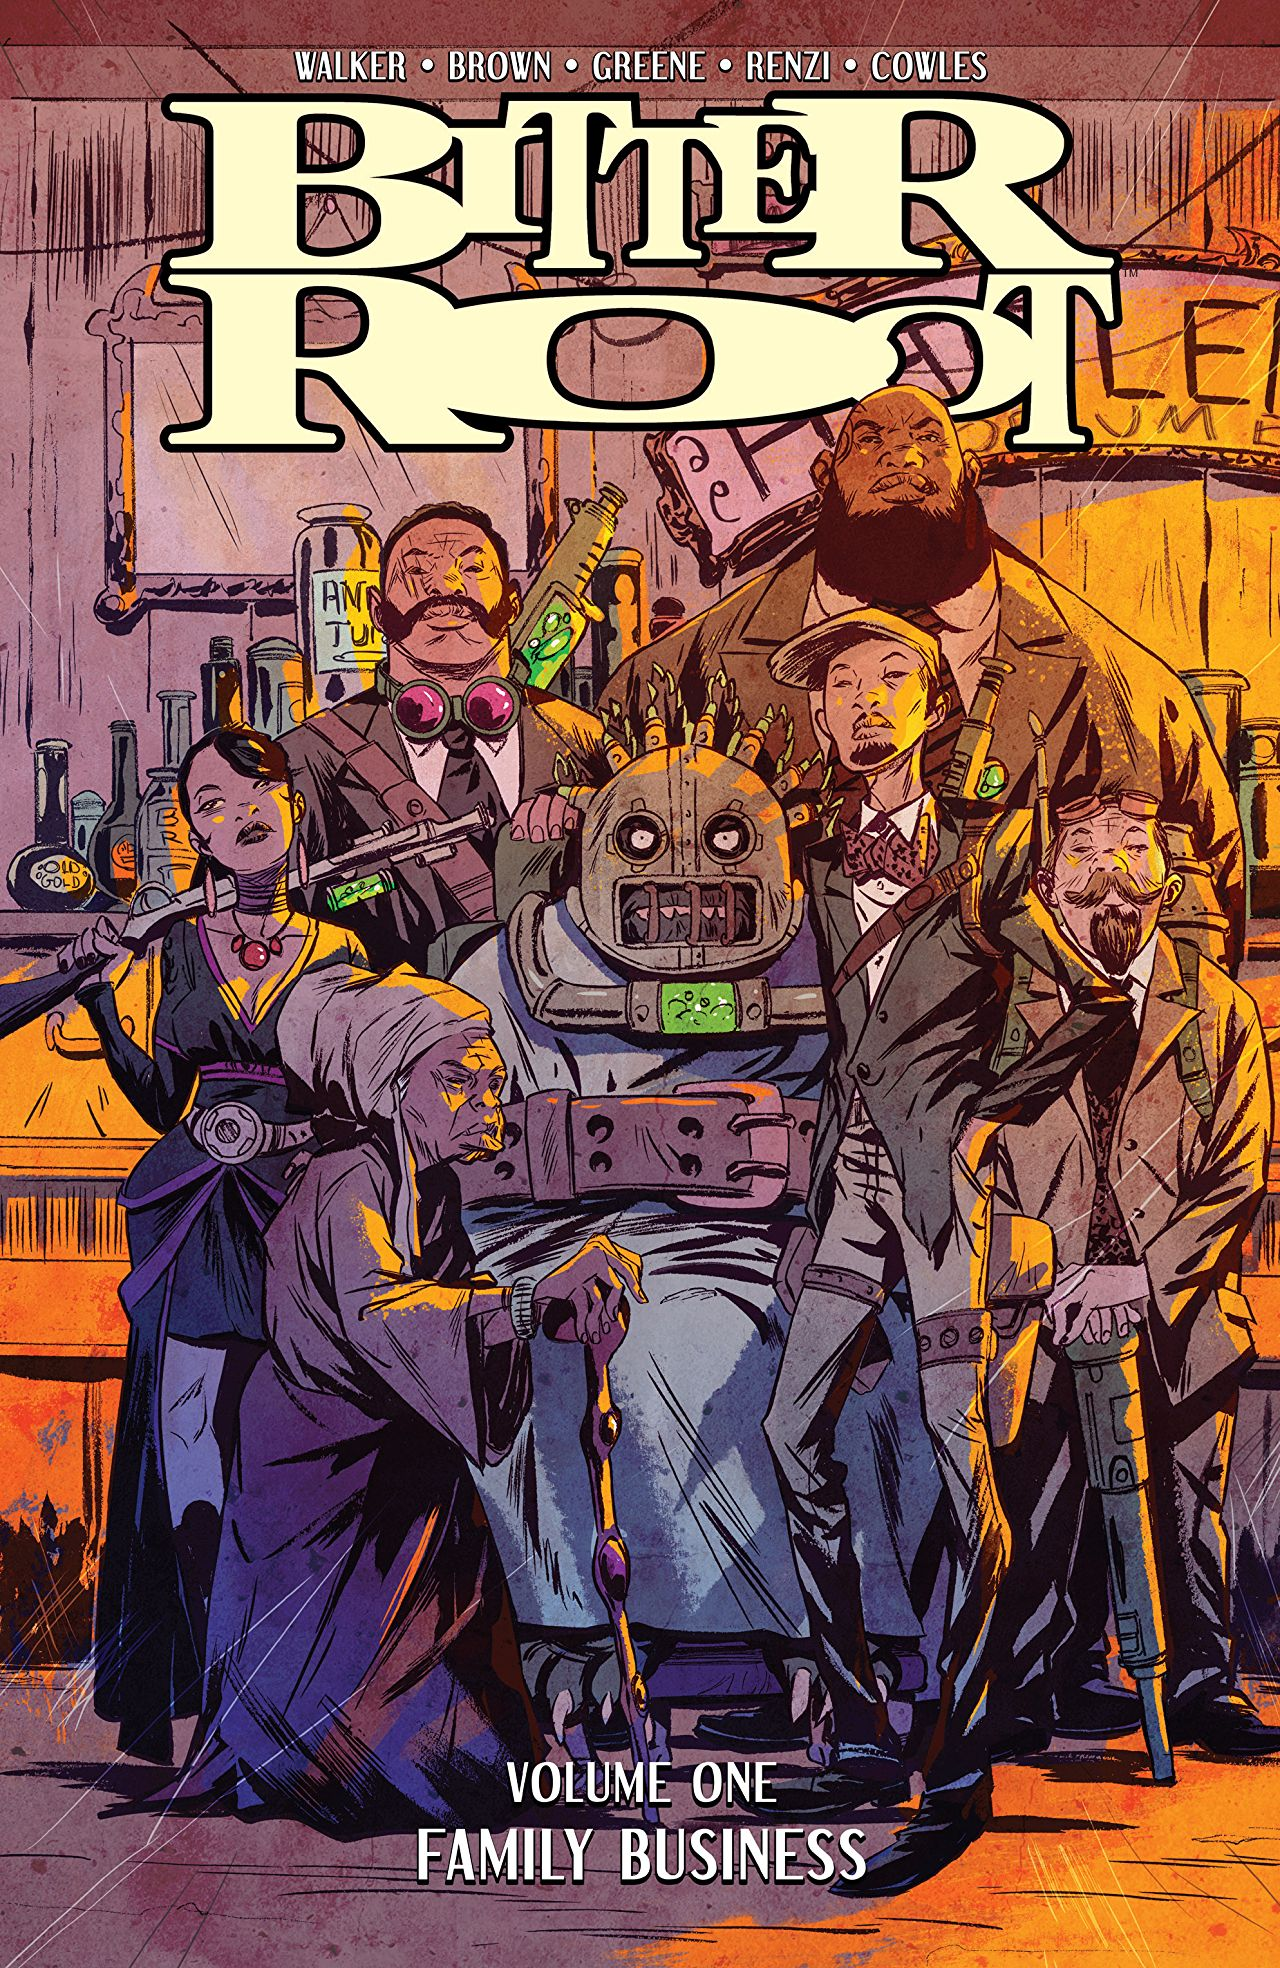 Bitter Root Vol. 1 review: A powerful heart